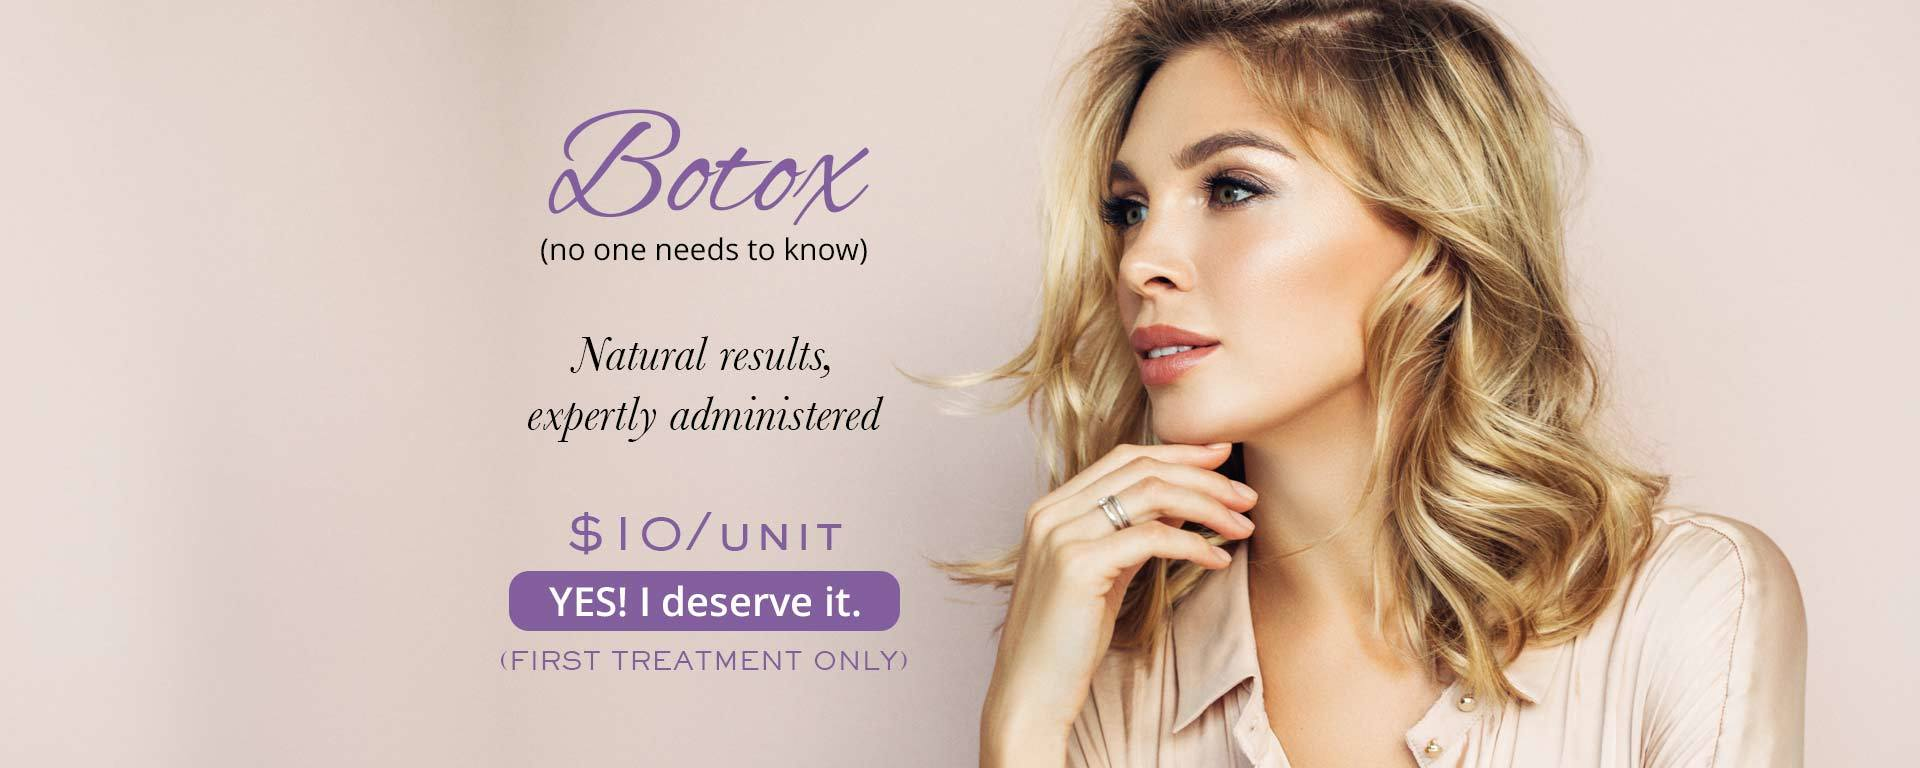 Botox, no one needs to know. Natural results, expertly administered. $10/unit. YES! I deserve it. first treatment only.